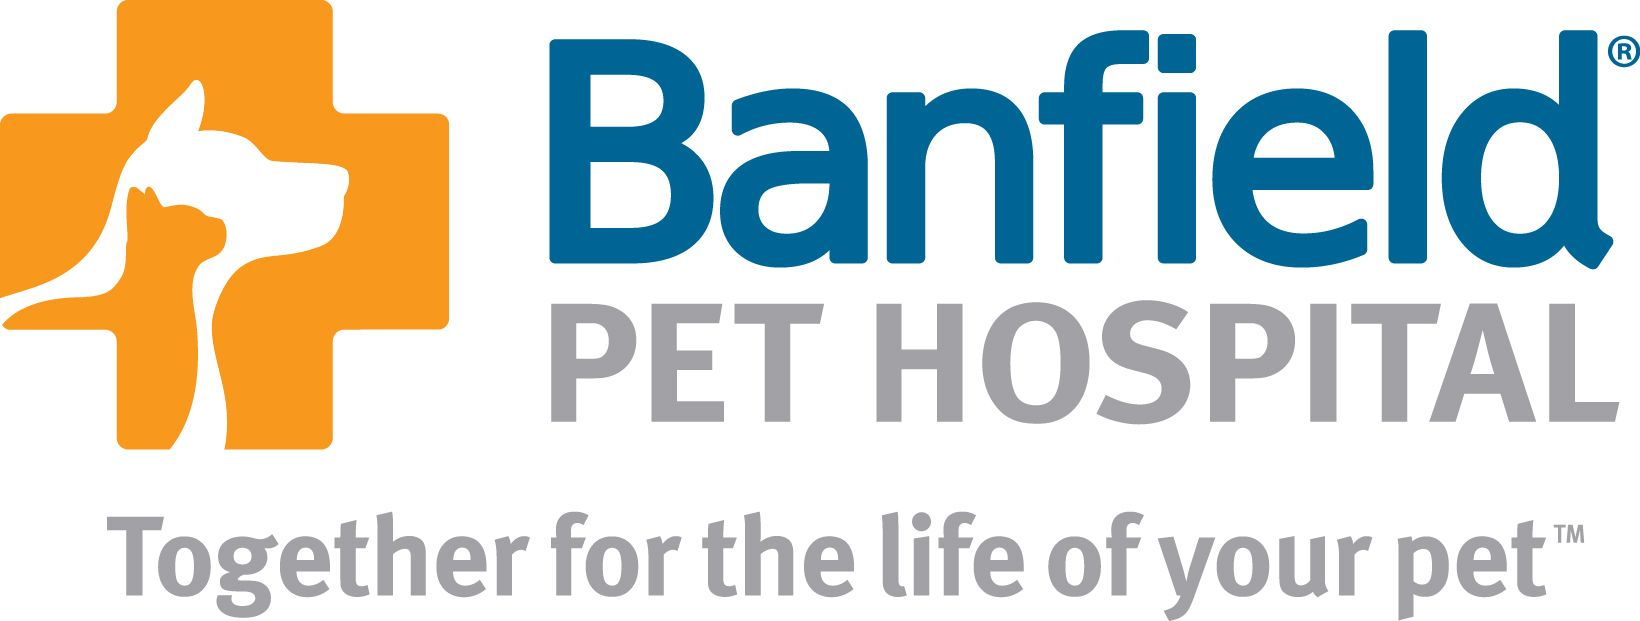 Banfield Pet Hospital Logotipos, Chappie